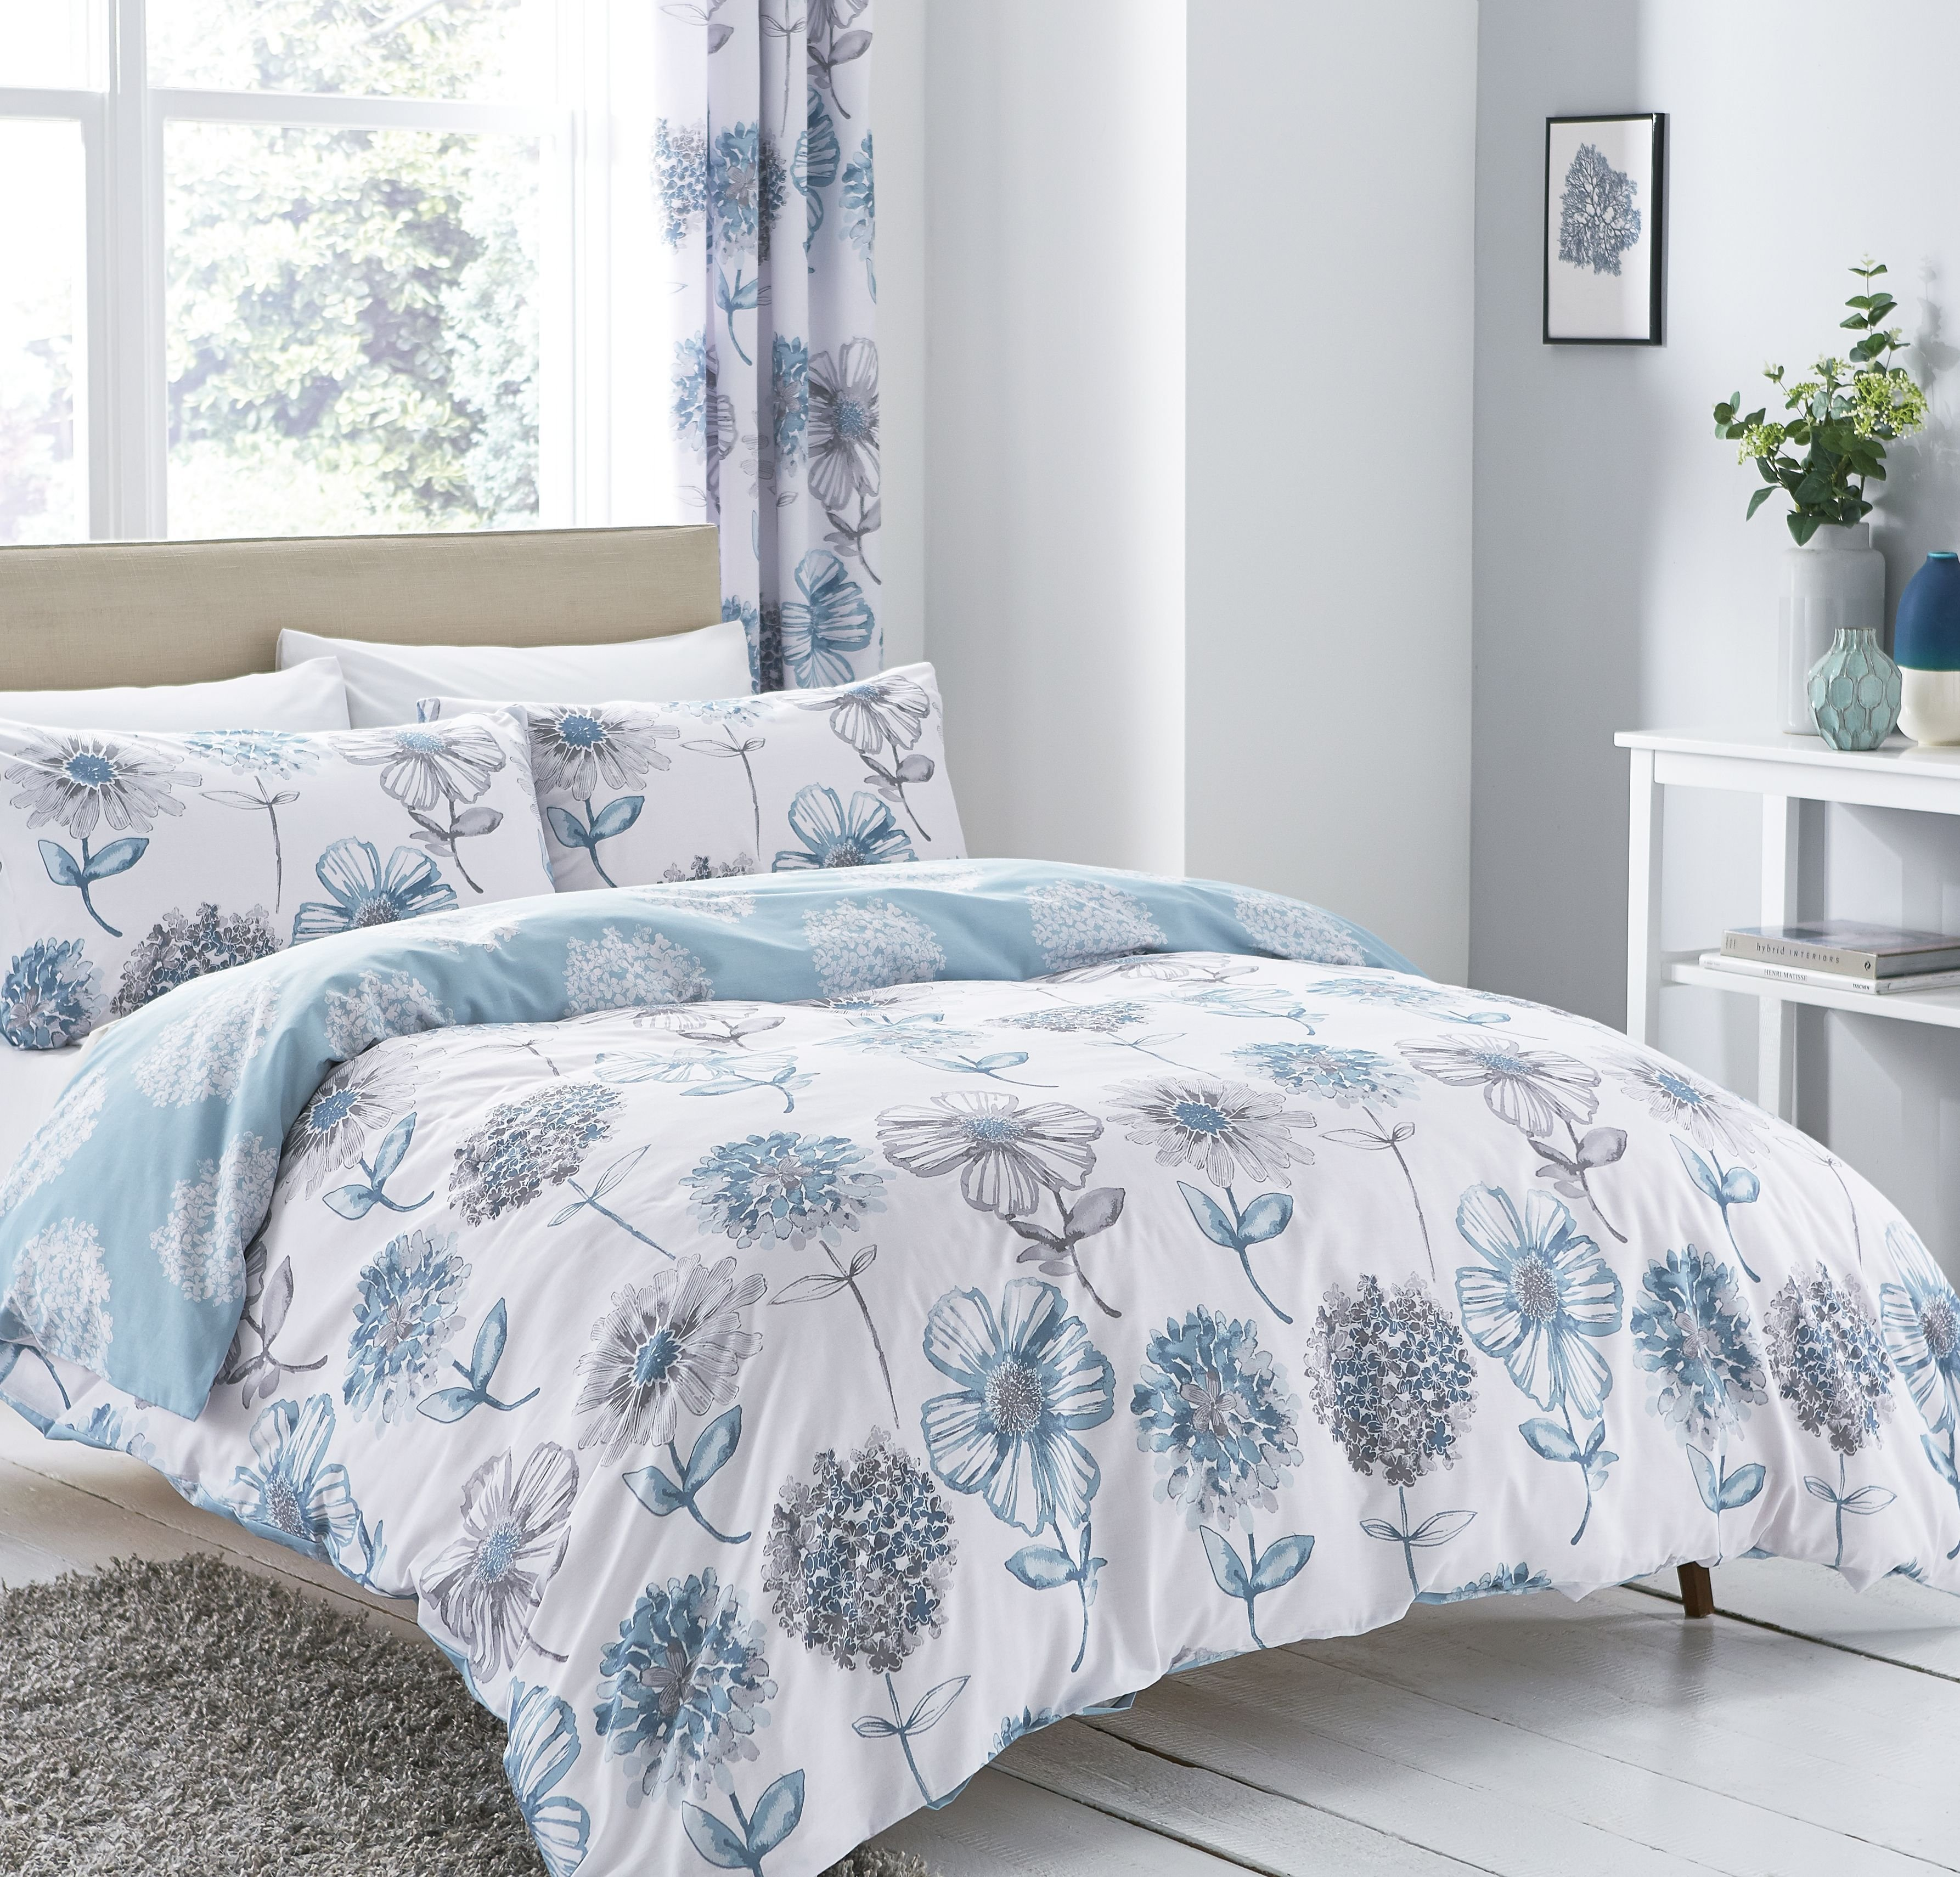 Image of Catherine Lansfield Blue Floral Bedding Set - Double.